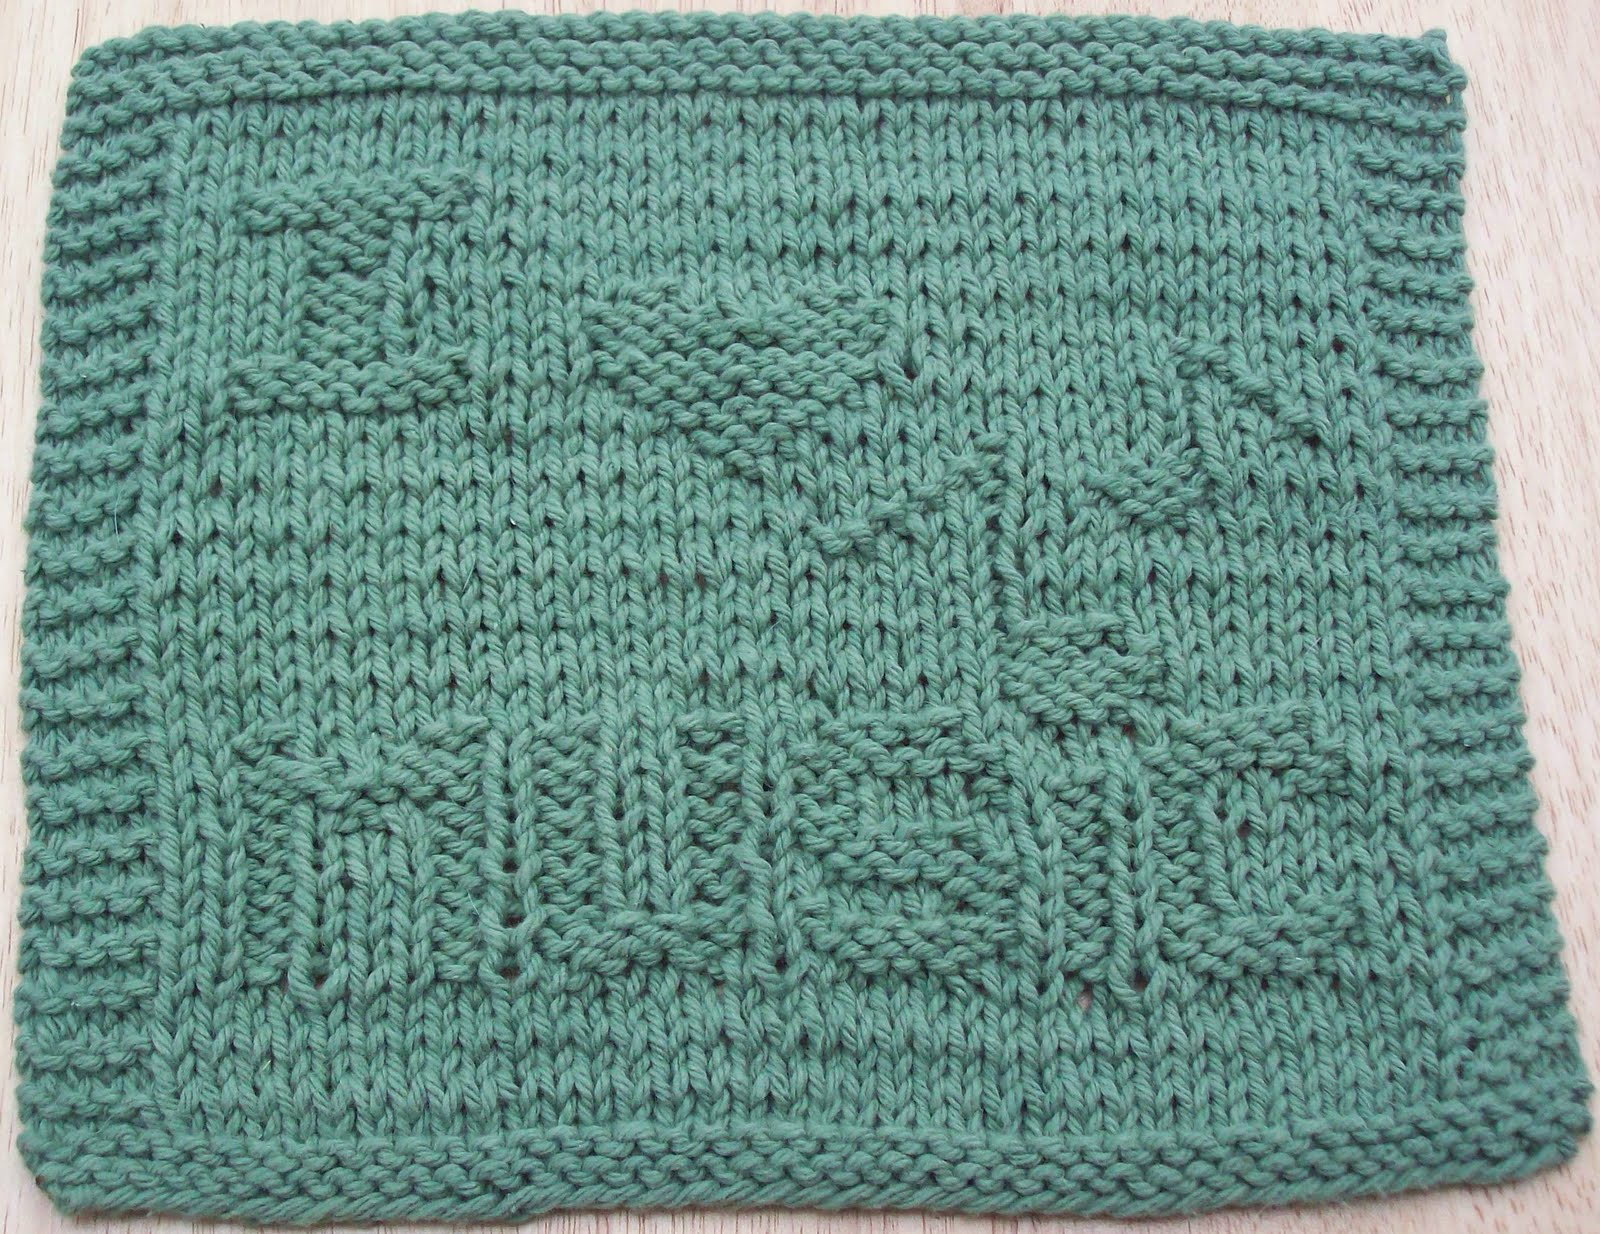 DigKnitty Designs: I Heart Music Knit Dishcloth Pattern